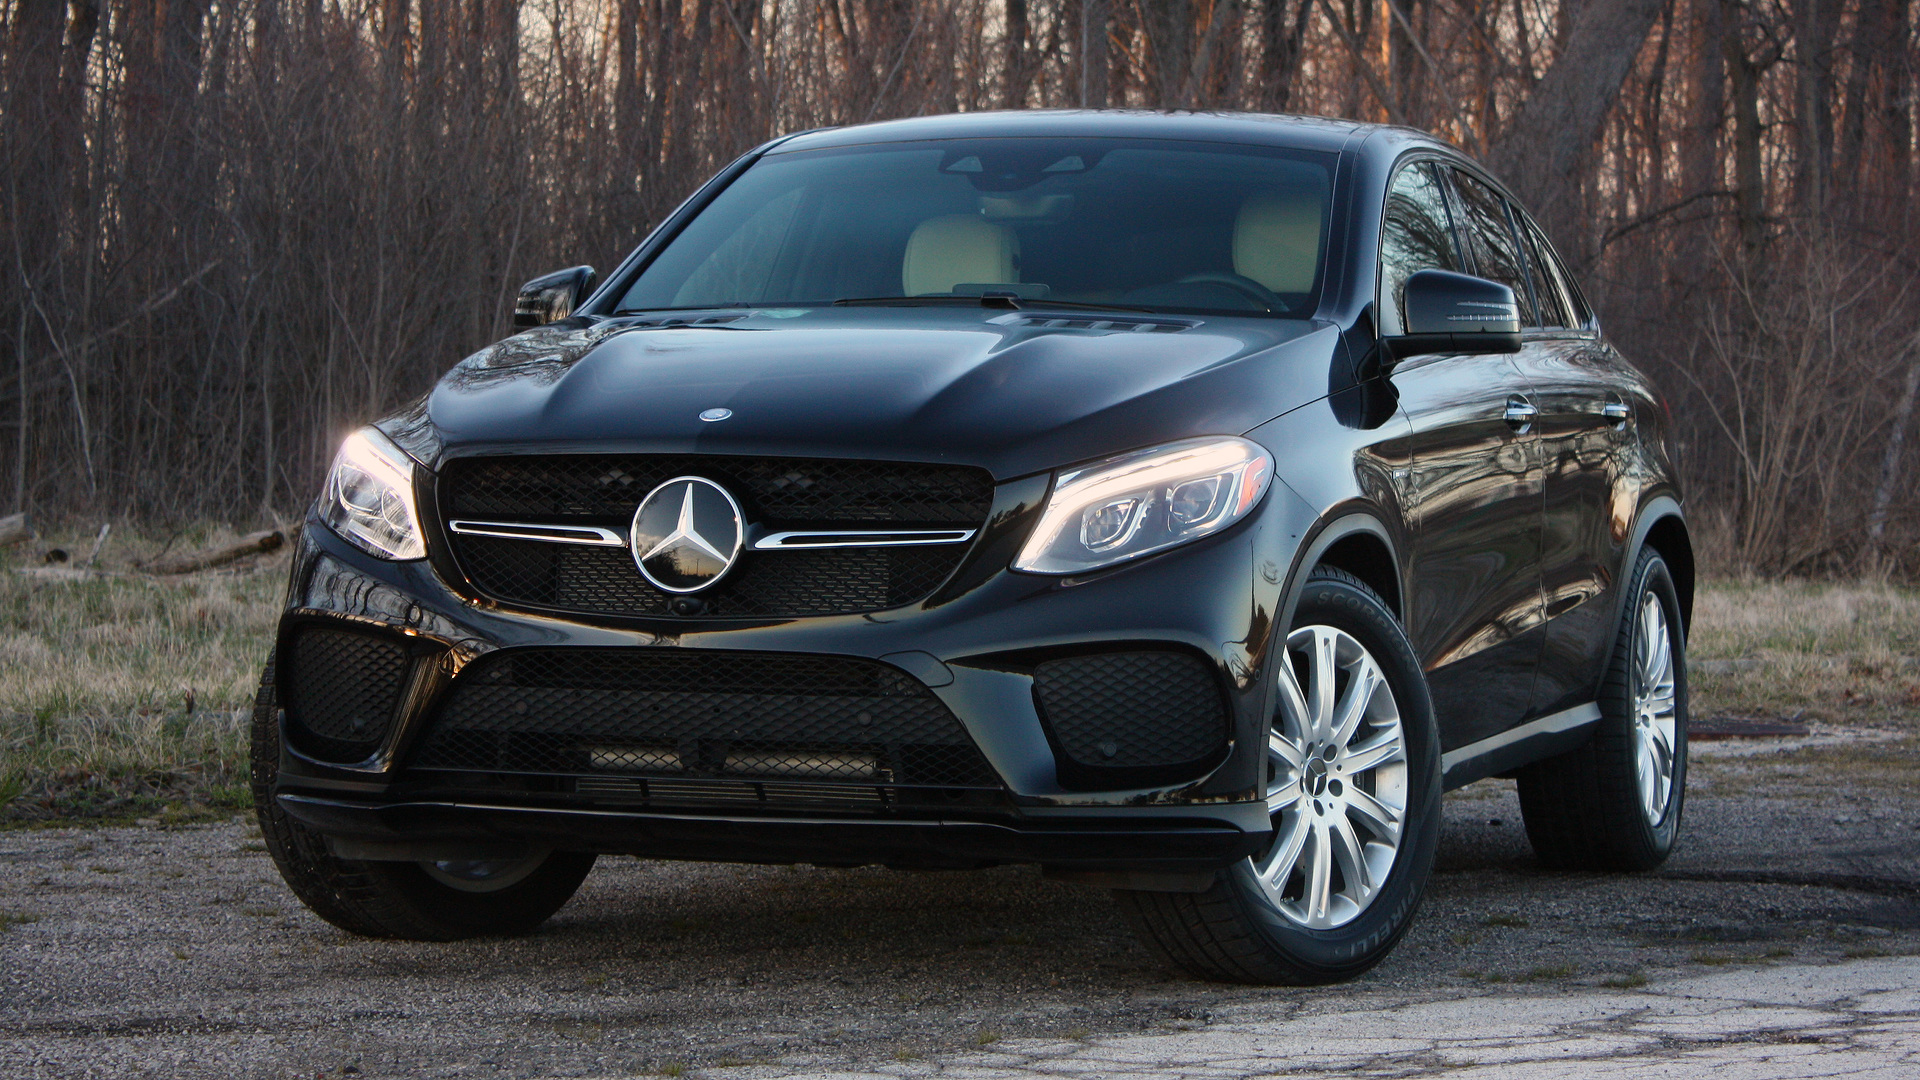 https://icdn-8.motor1.com/images/mgl/AXZJO/s1/2016-mercedes-benz-gle450-amg-coupe.jpg